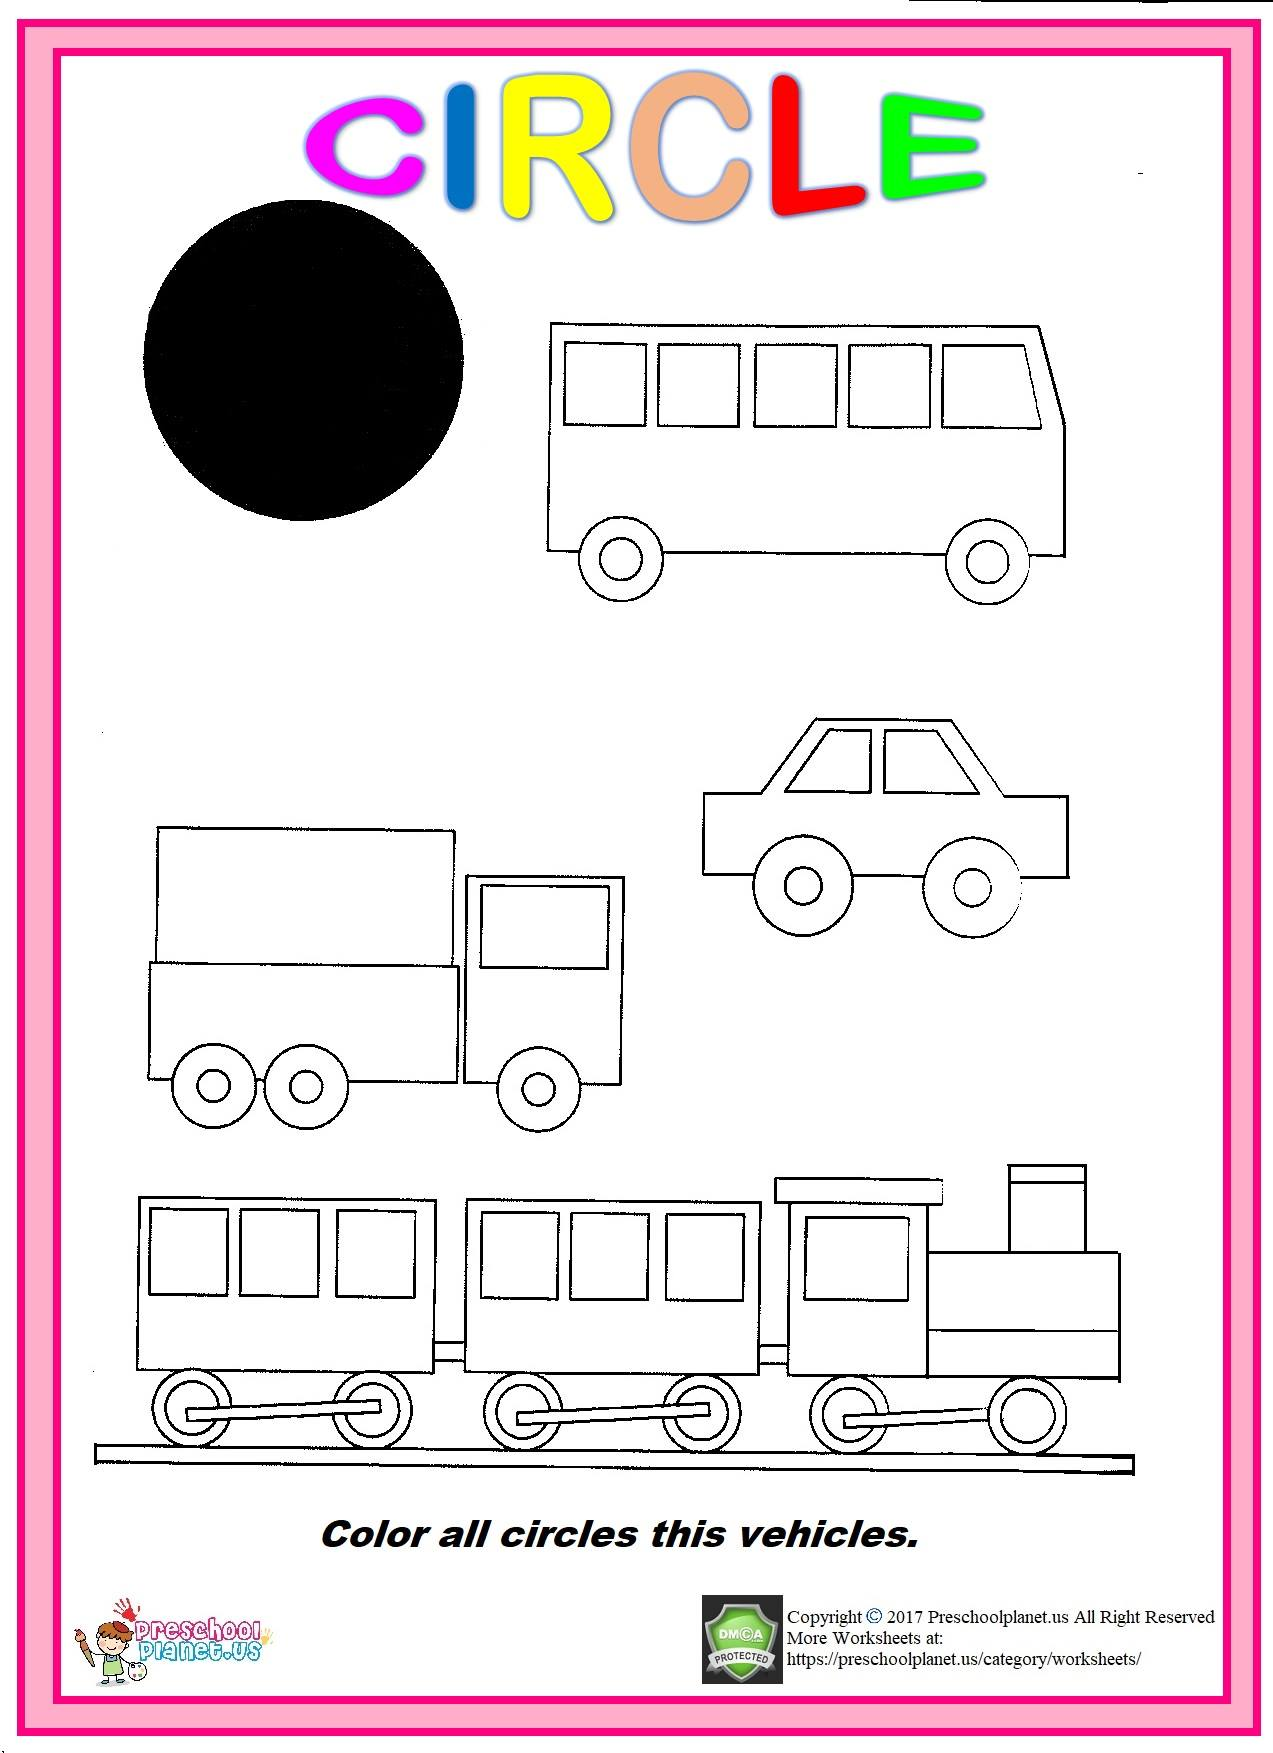 Circle Worksheet